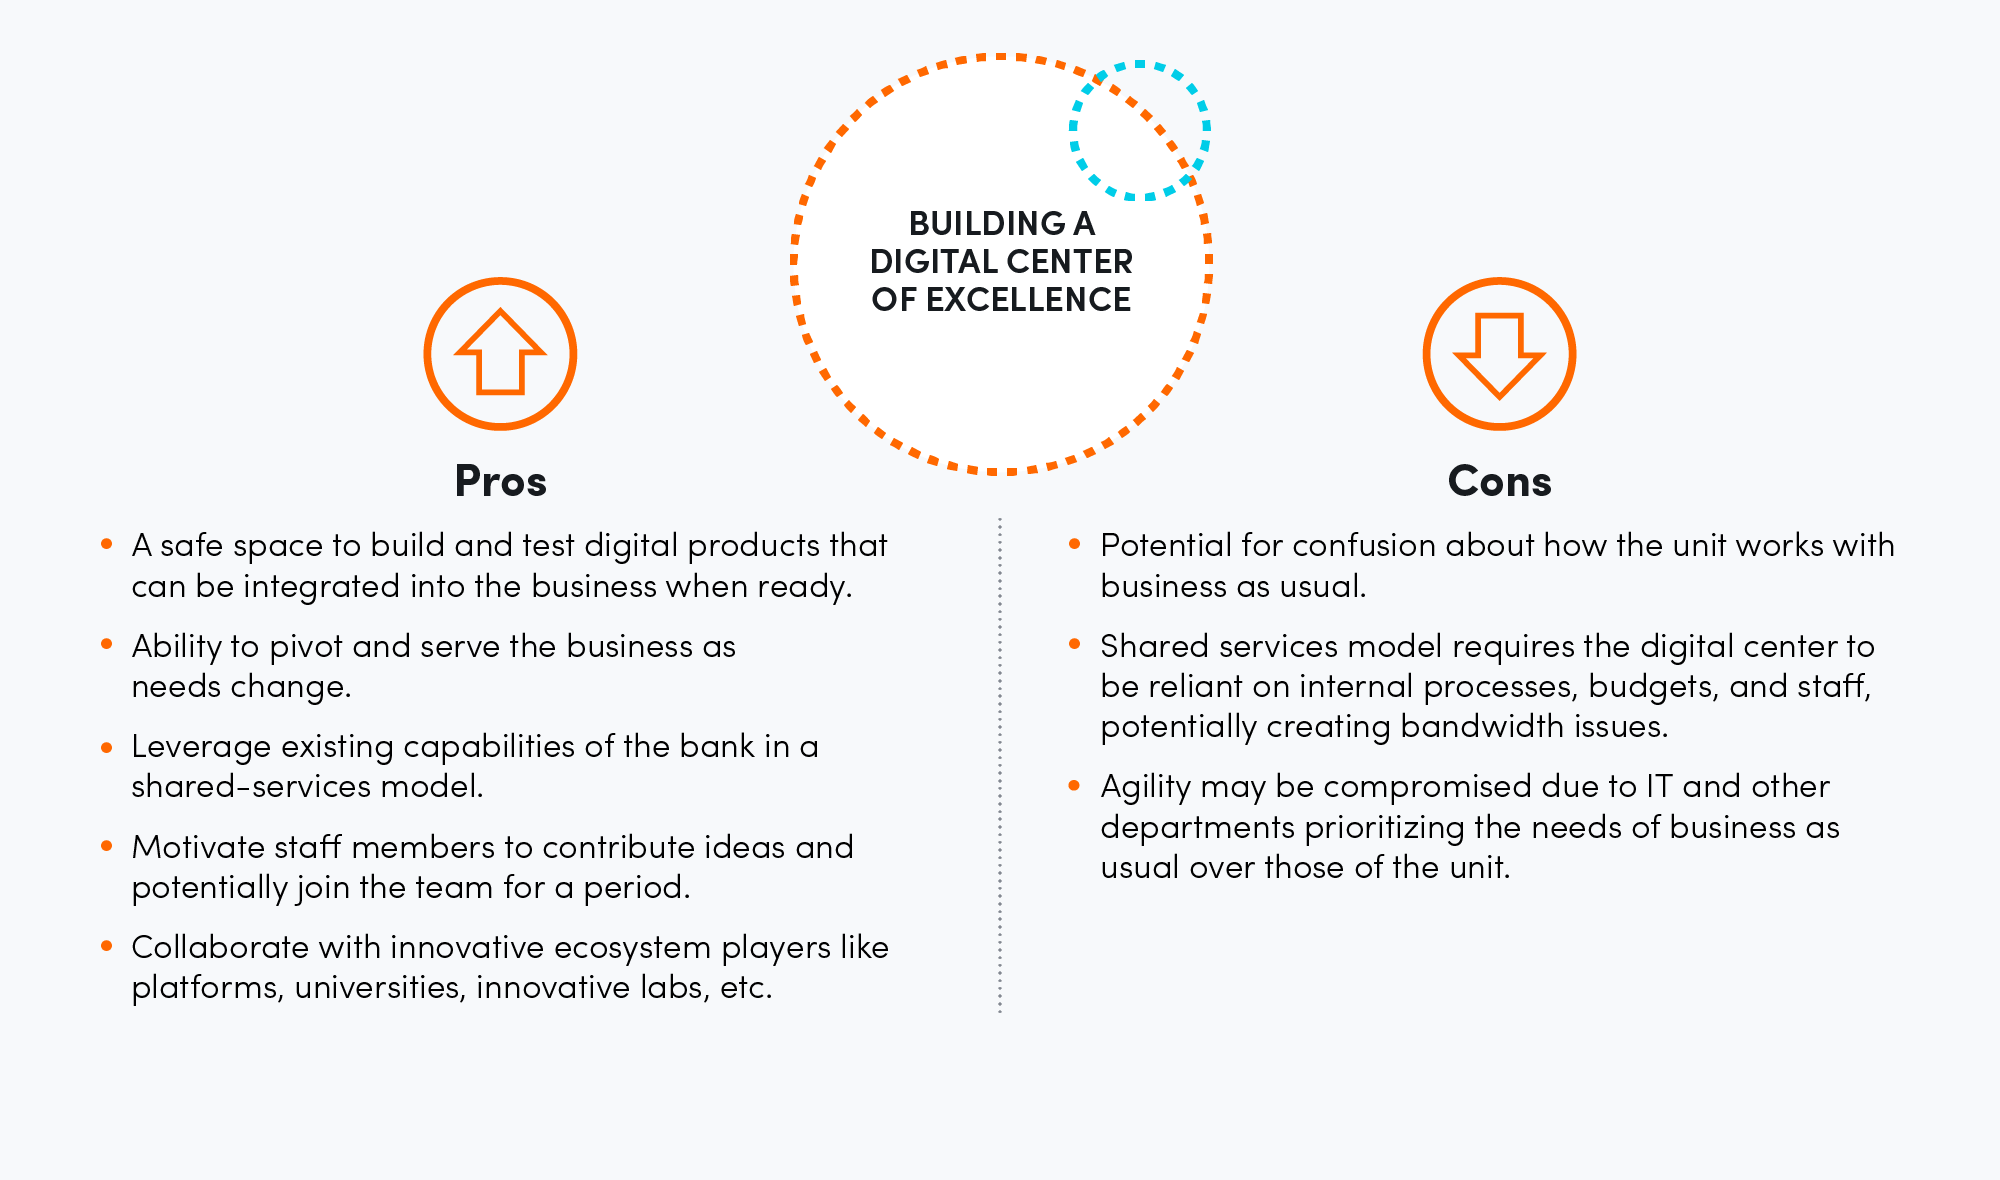 Building a digital center of excellence